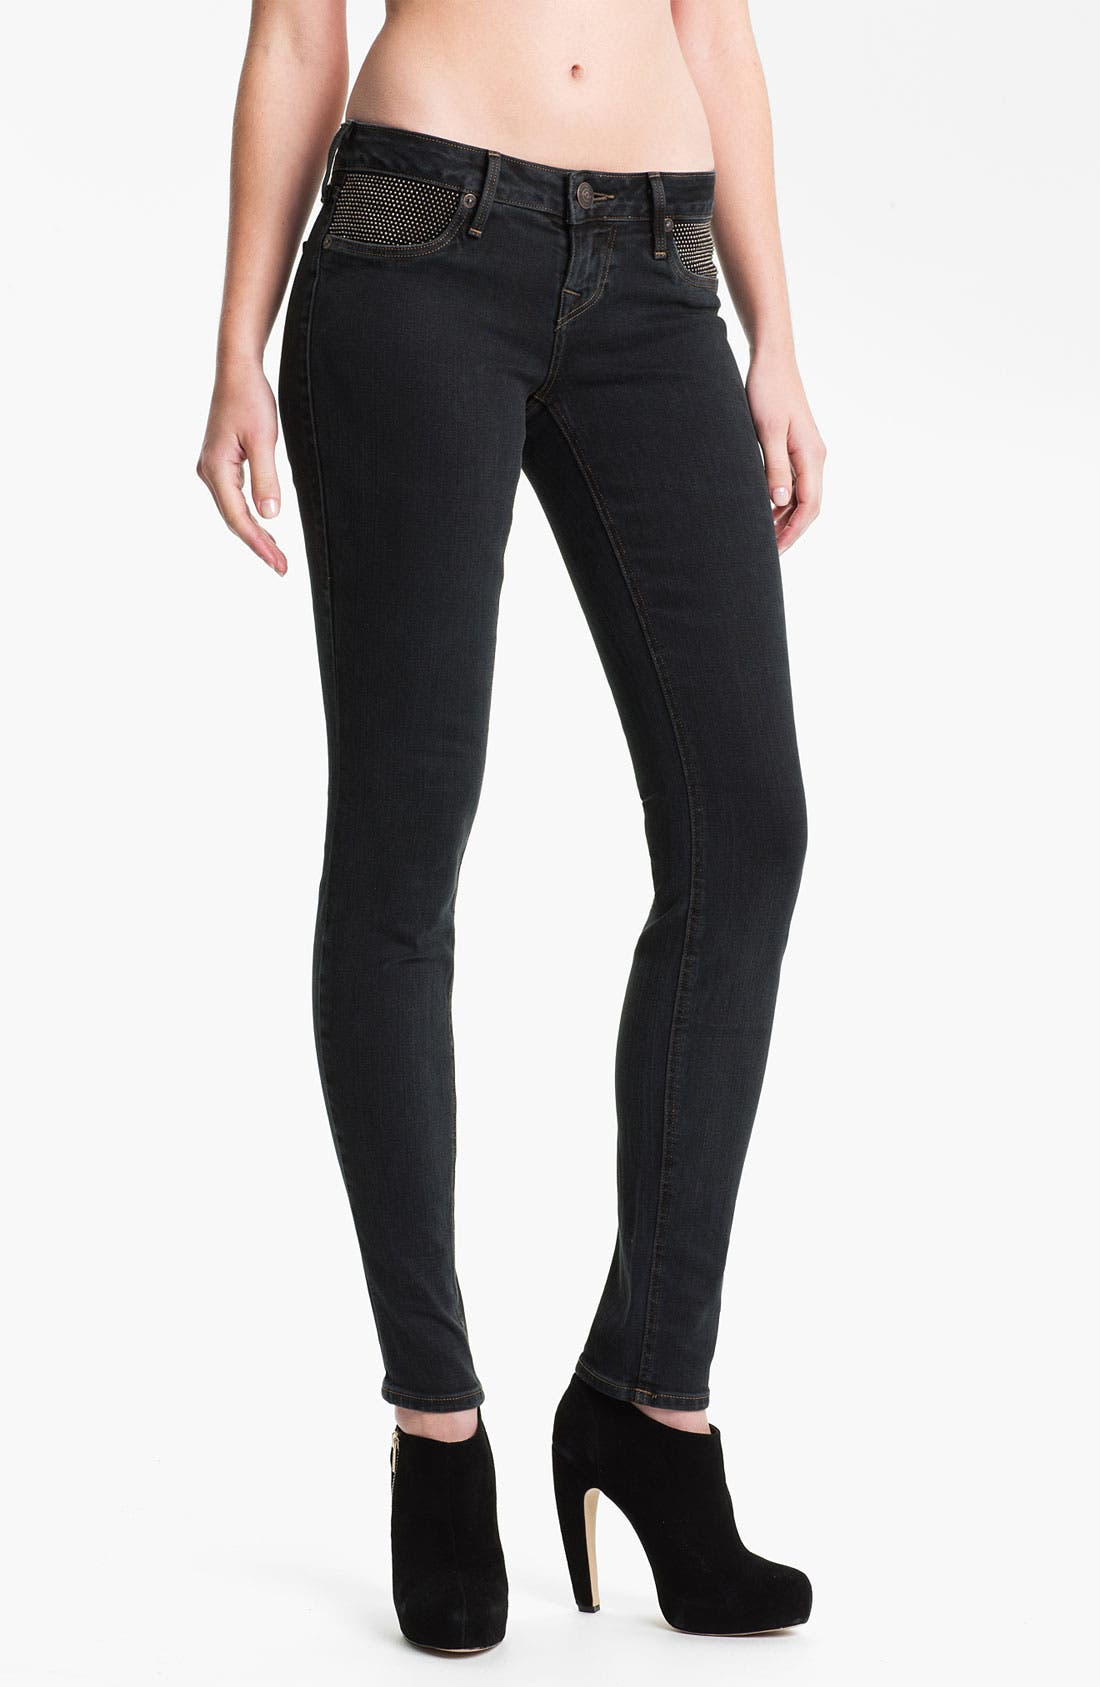 Alternate Image 1 Selected - True Religion Brand Jeans 'Shannon' Studded Pocket Skinny Jeans (Black Stone)